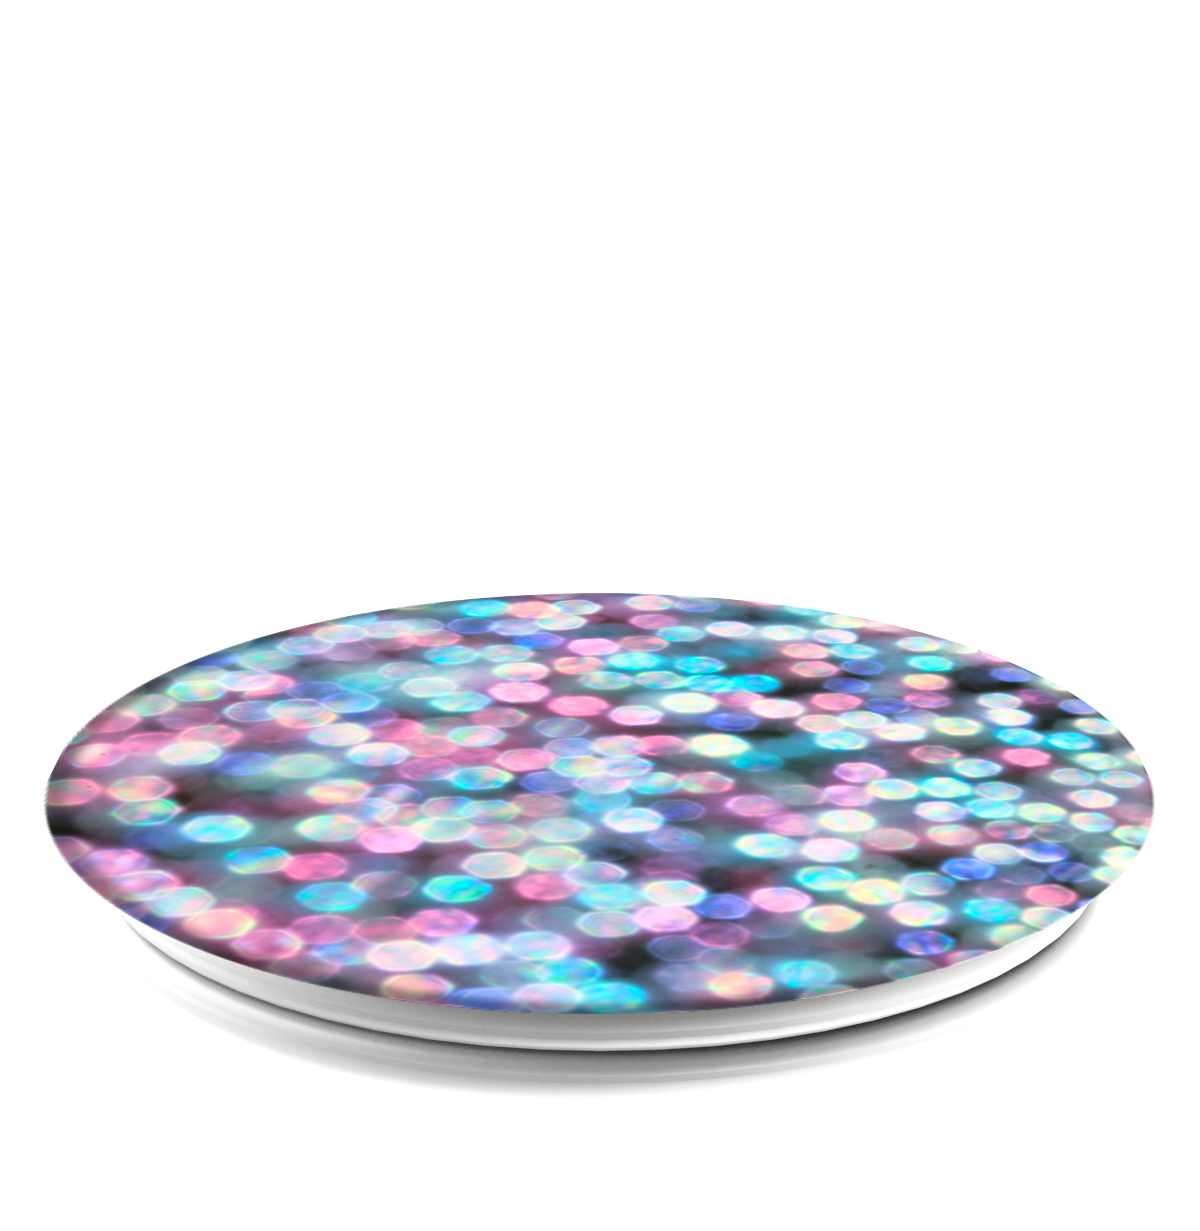 Tiffany Snow 霓虹, PopSockets